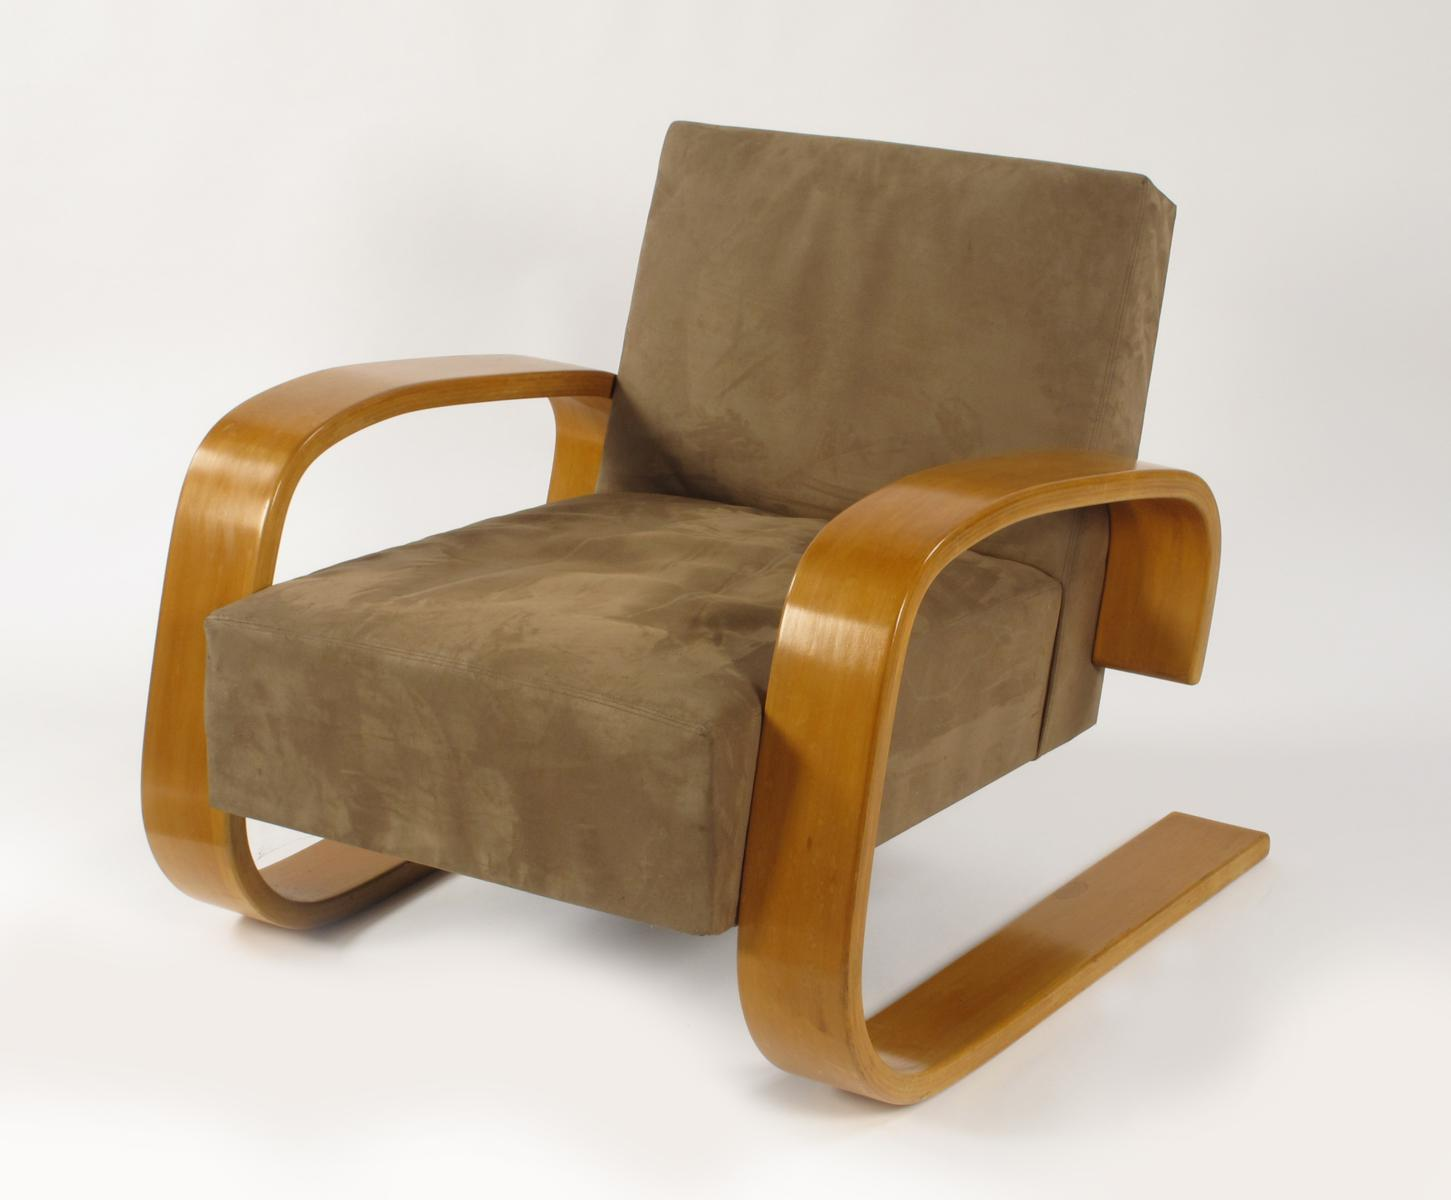 A Tank Lounge Chair 37400 designed by Alvar Aalto Lot 164